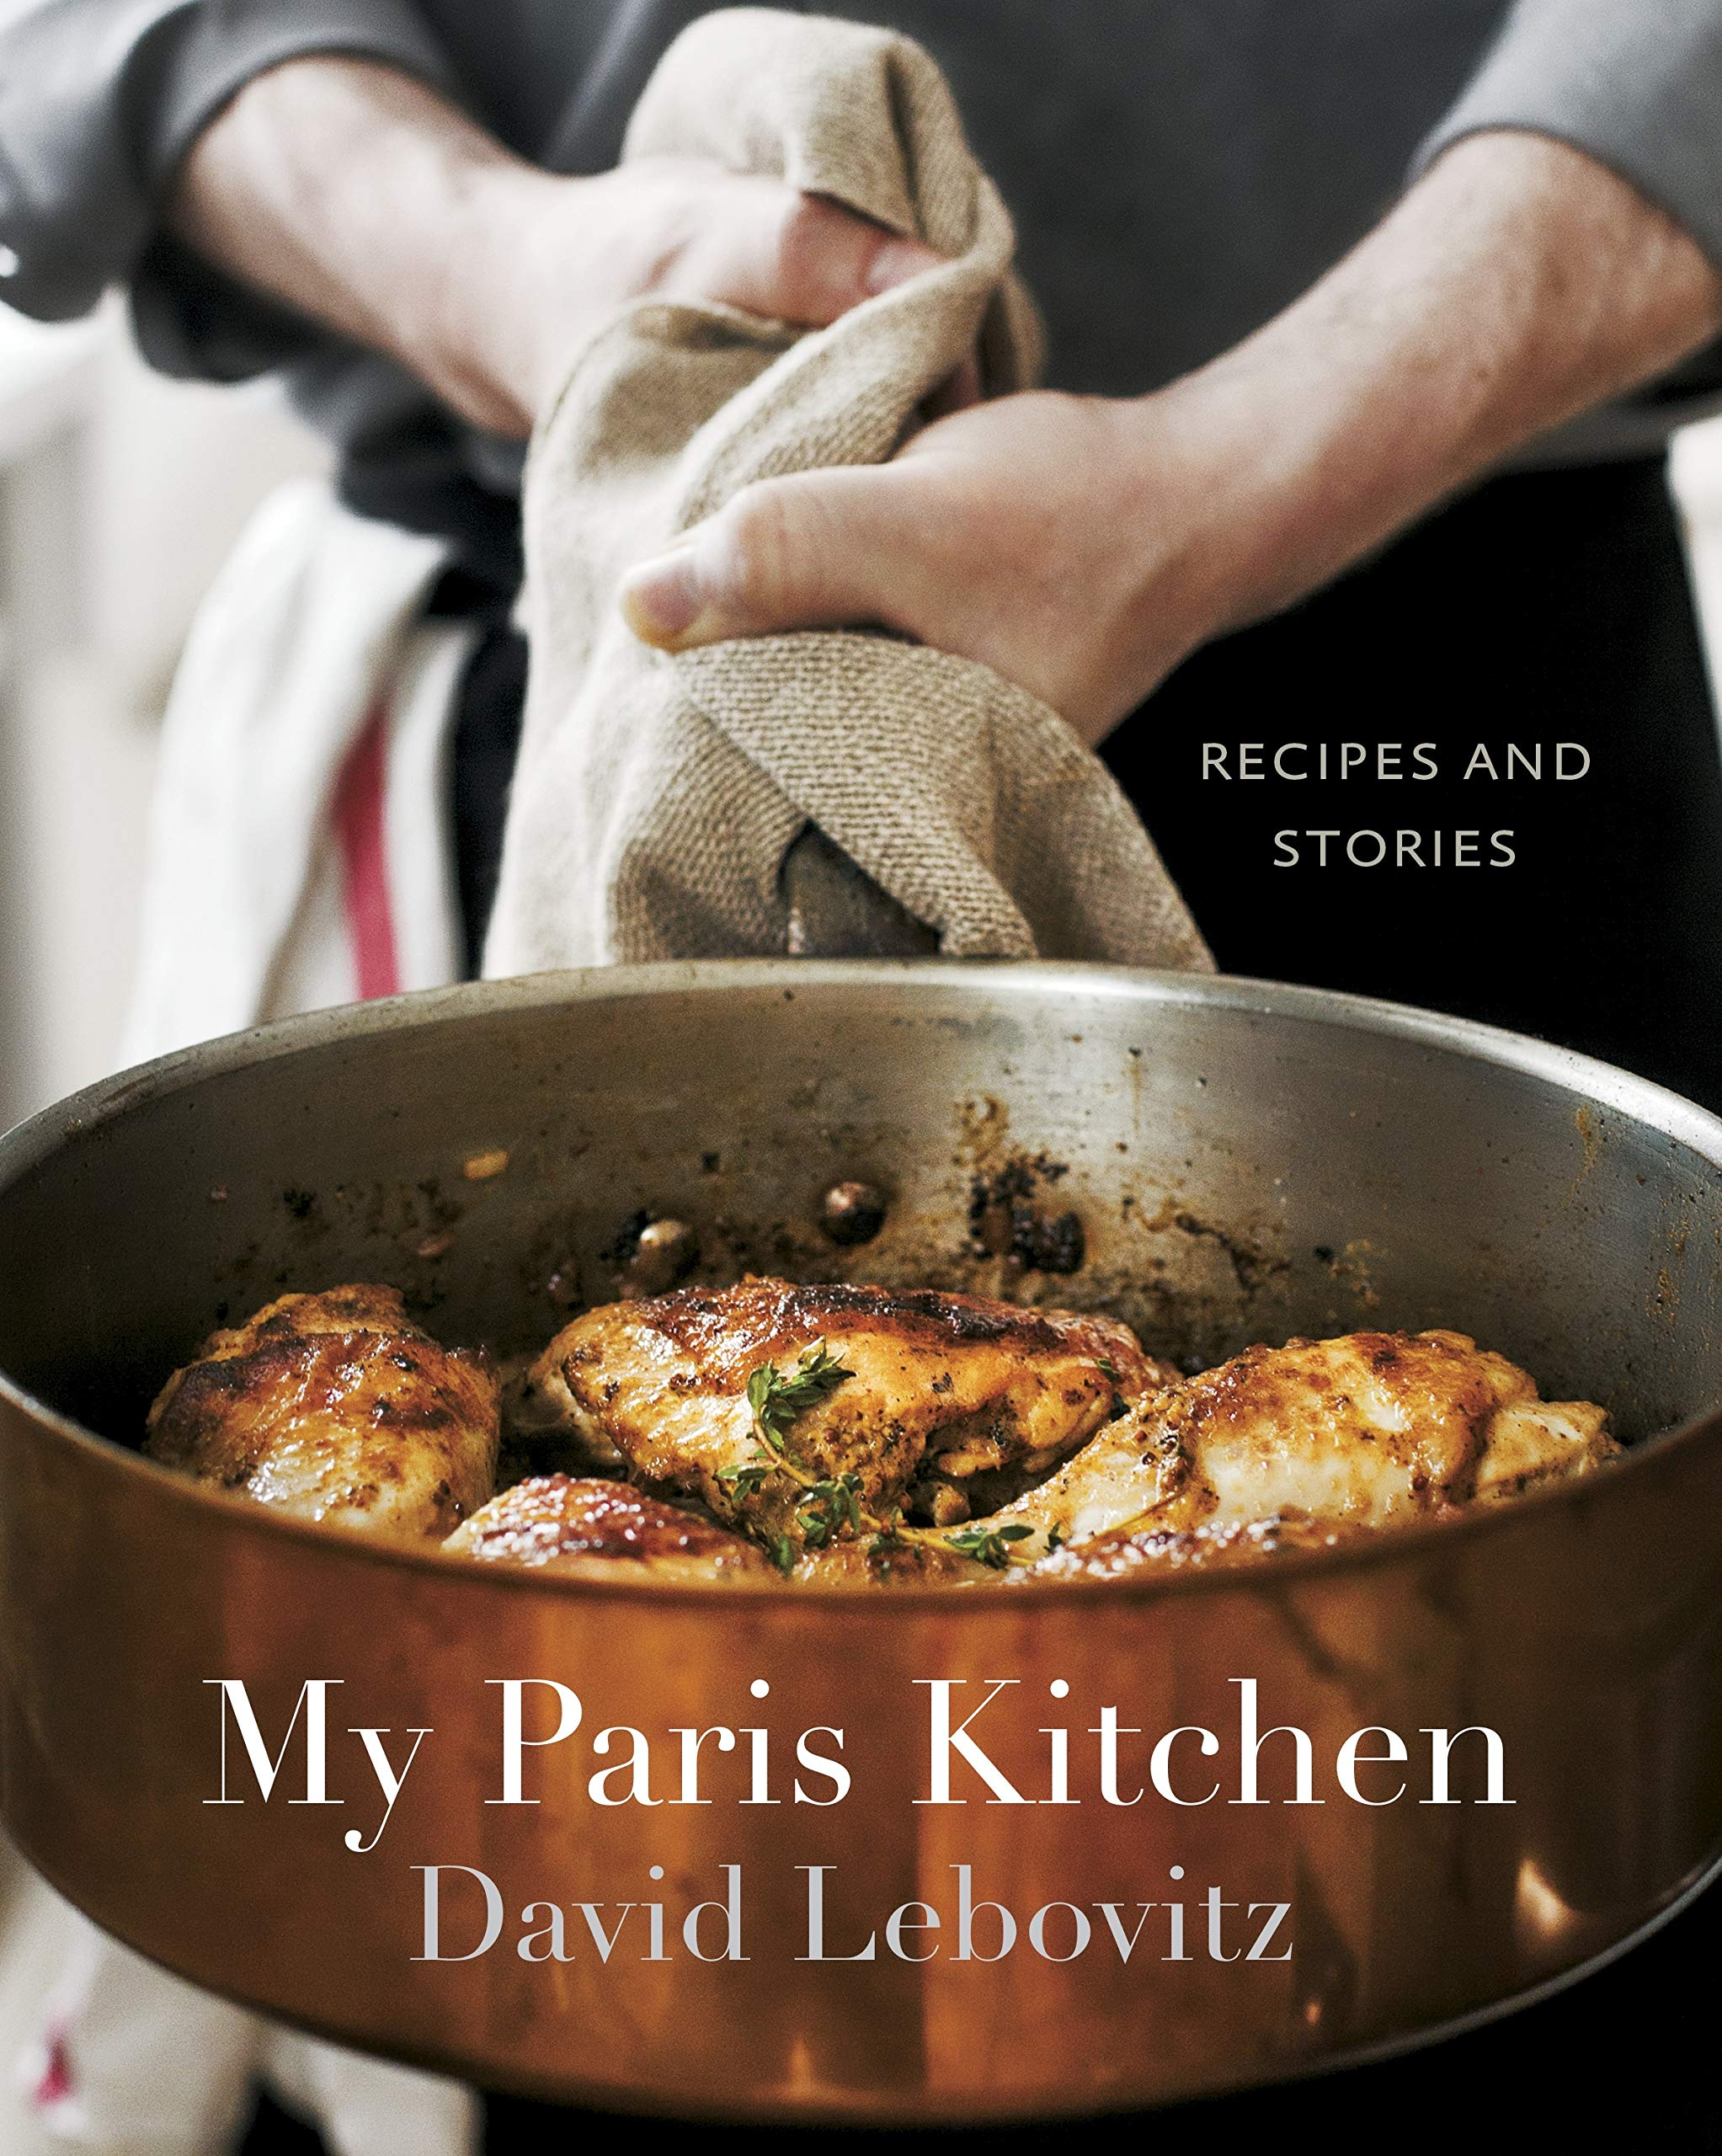 My Paris Kitchen: Recipes and Stories [A Cookbook]: Lebovitz, David: 8601401105633: Amazon.com: Books